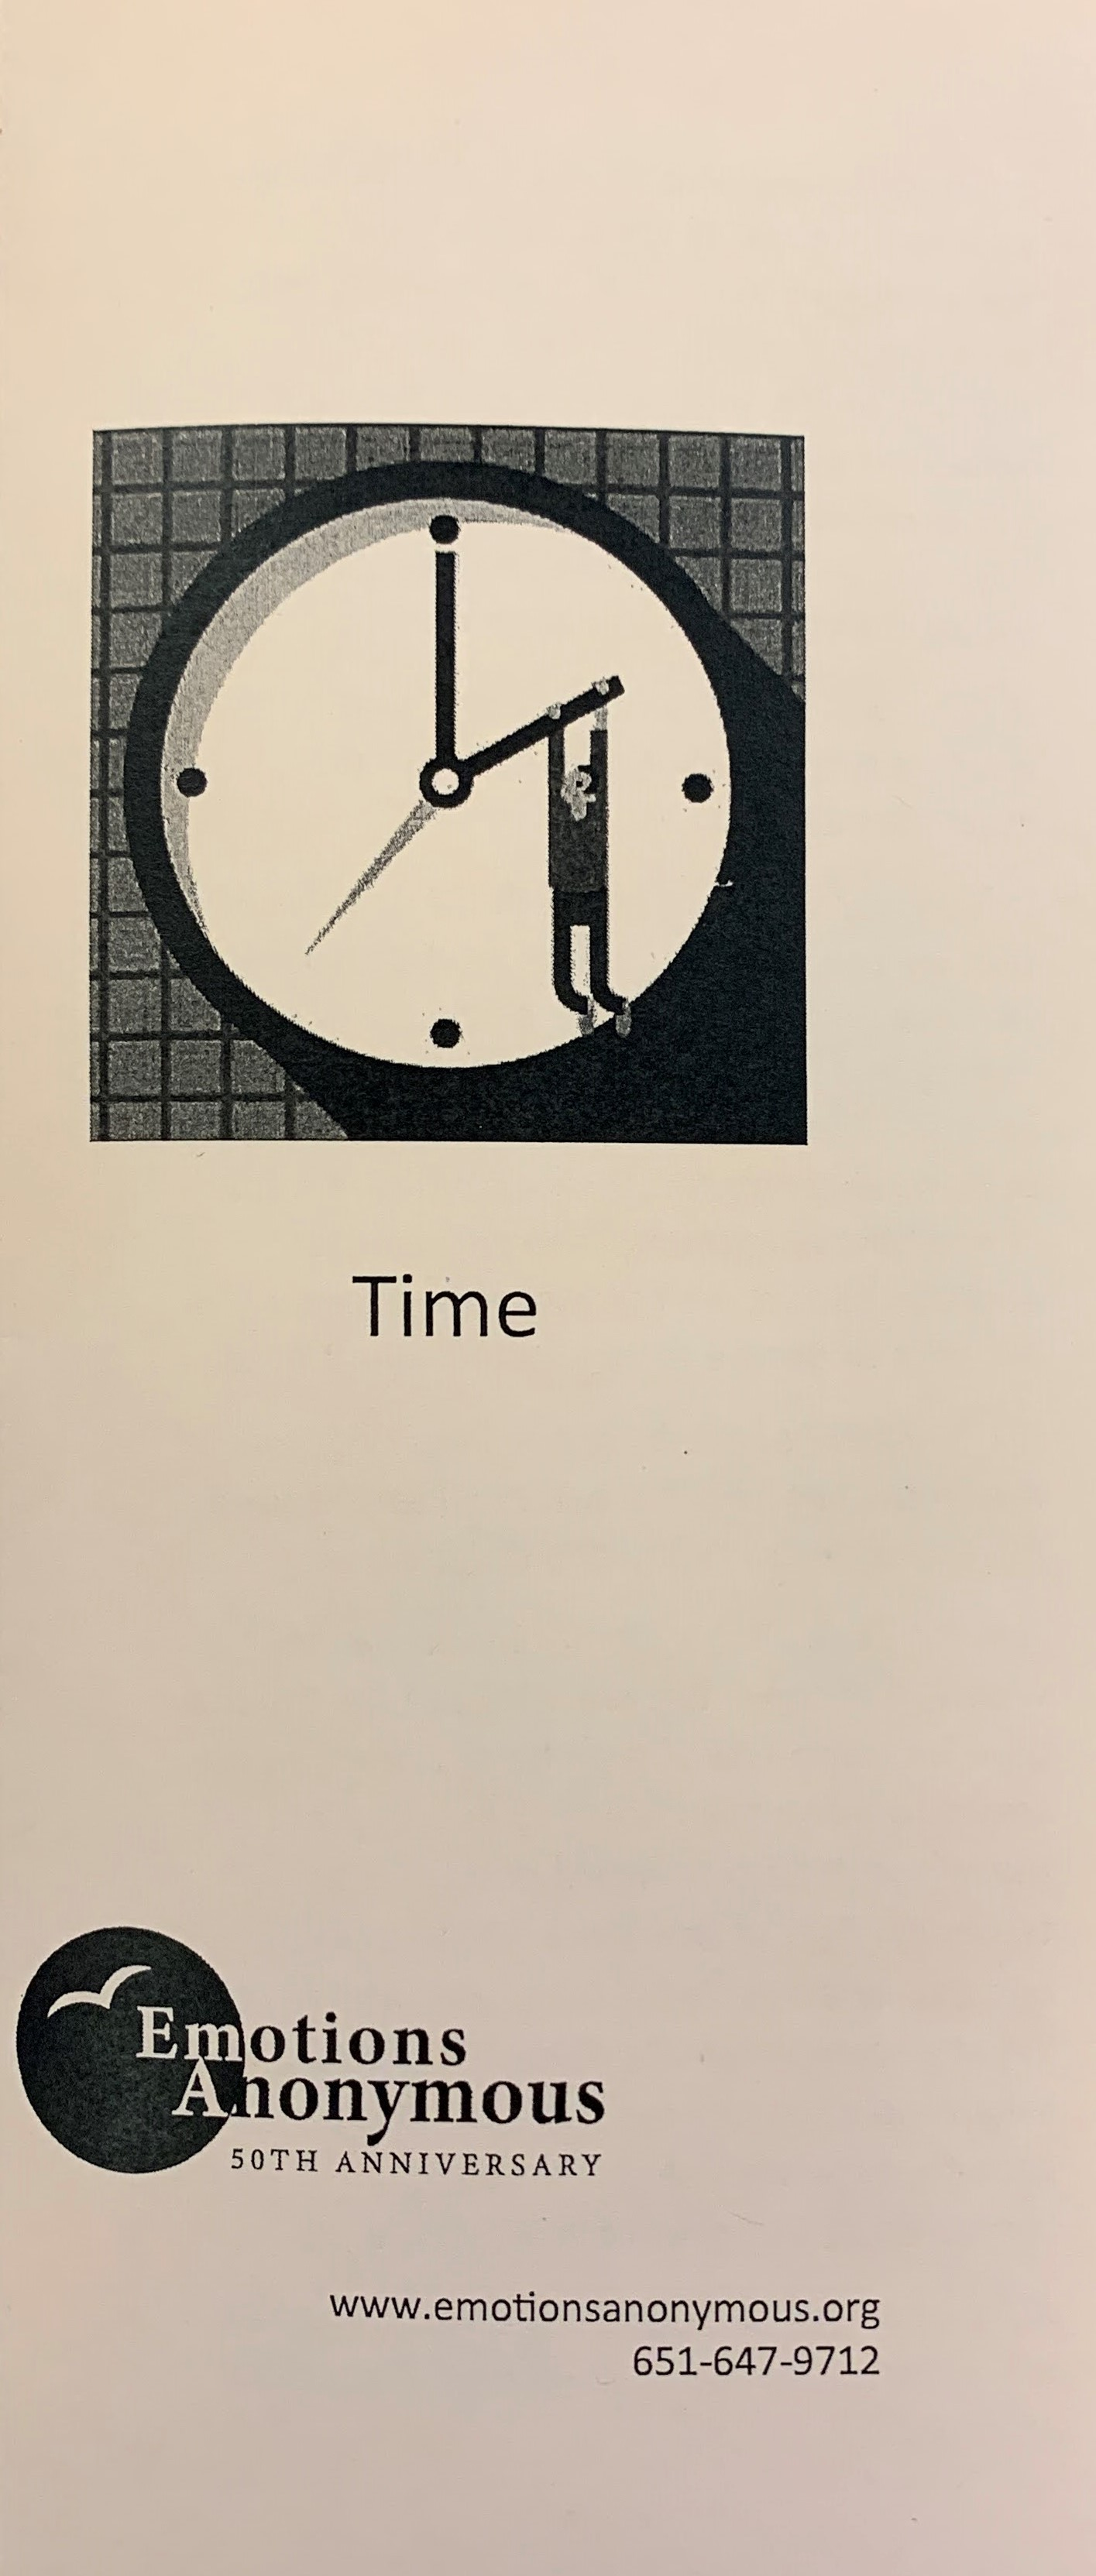 #99 — Time (NEW: July 2021)!!!